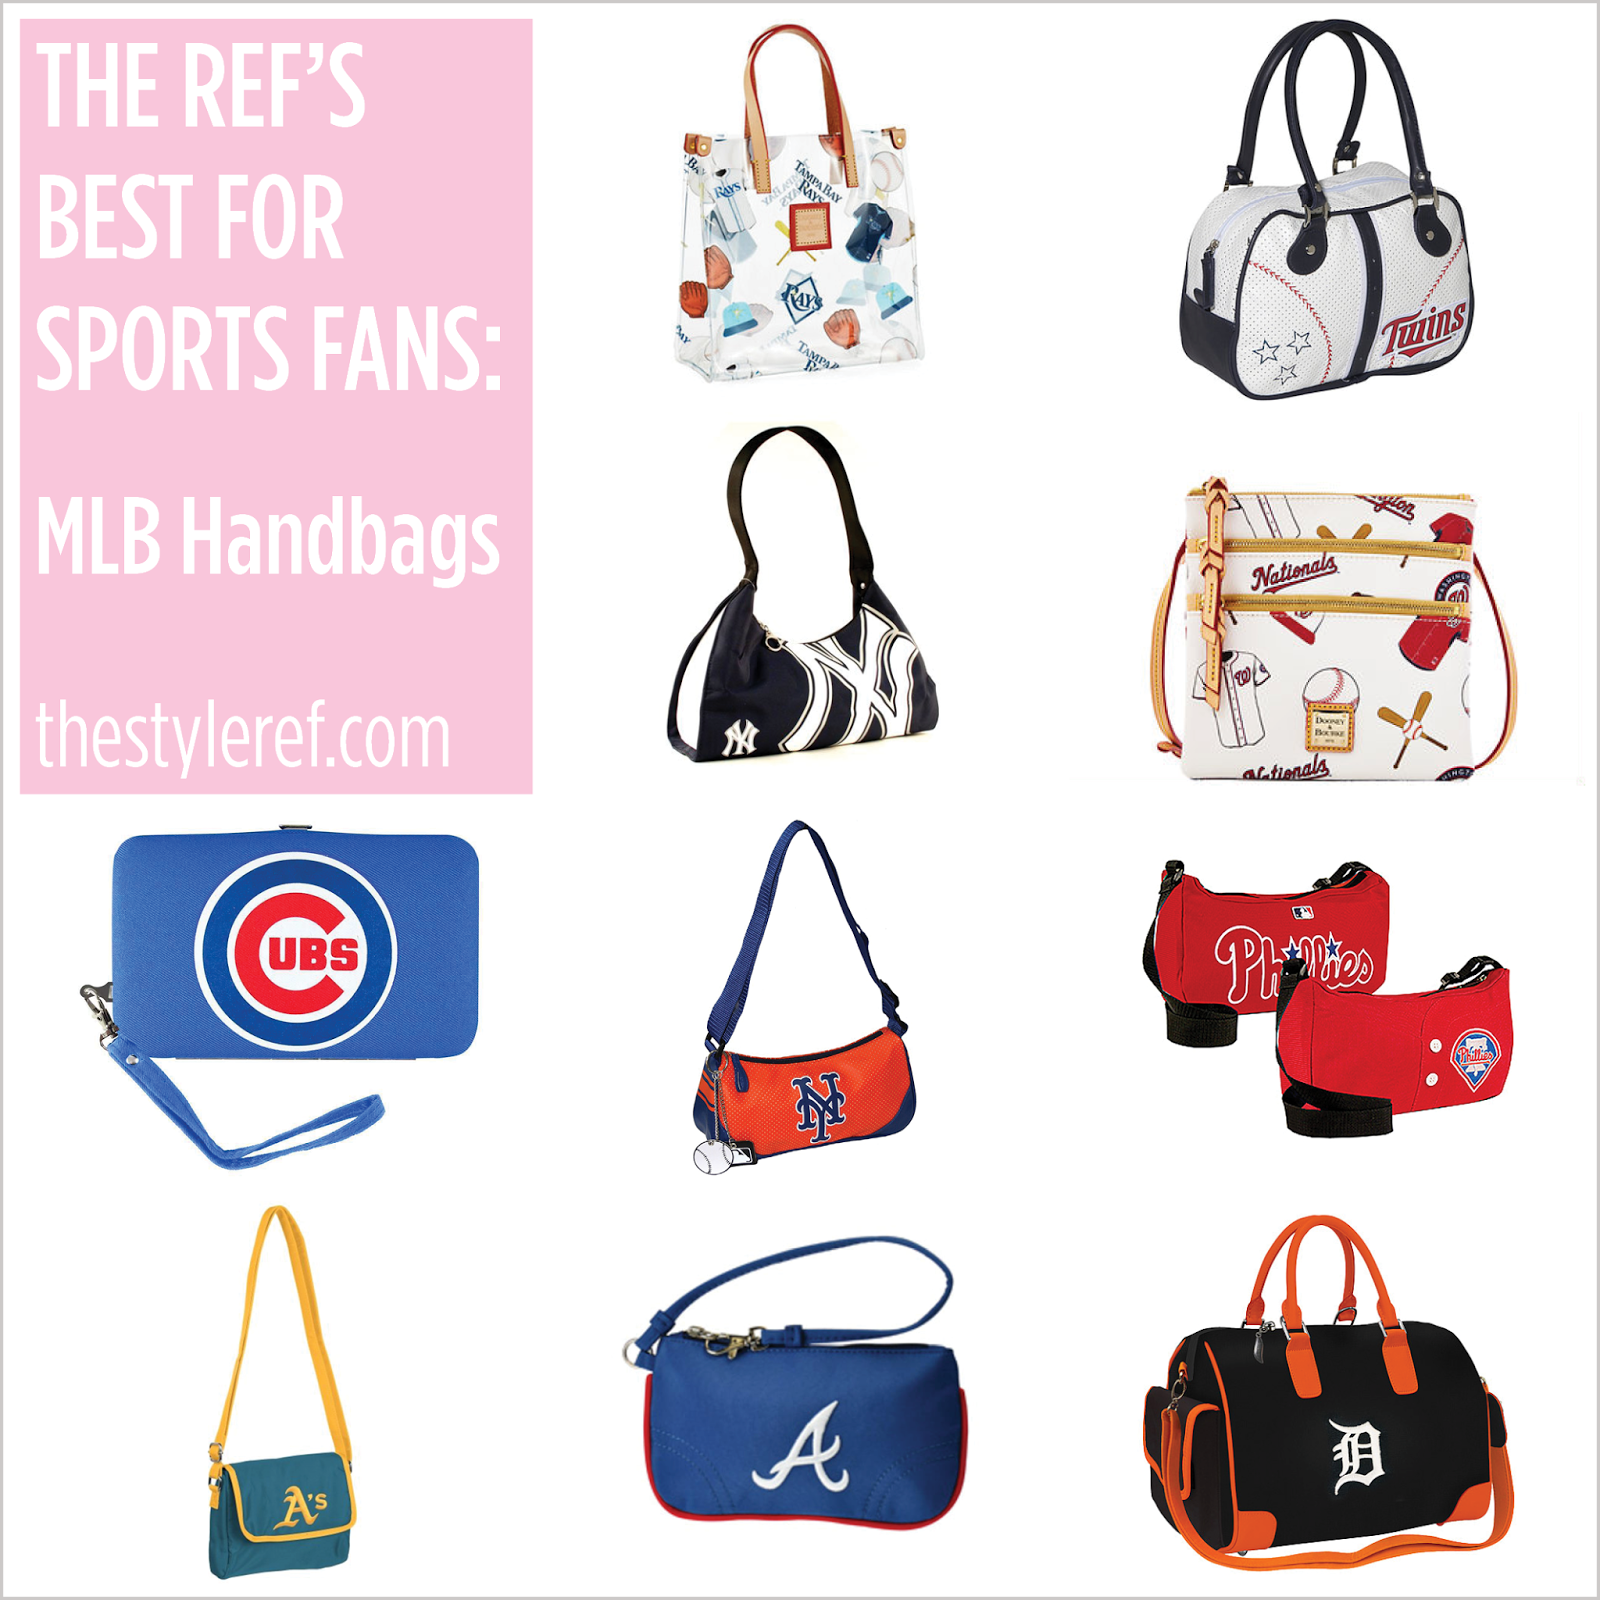 MLB handbags, purses and tote bags